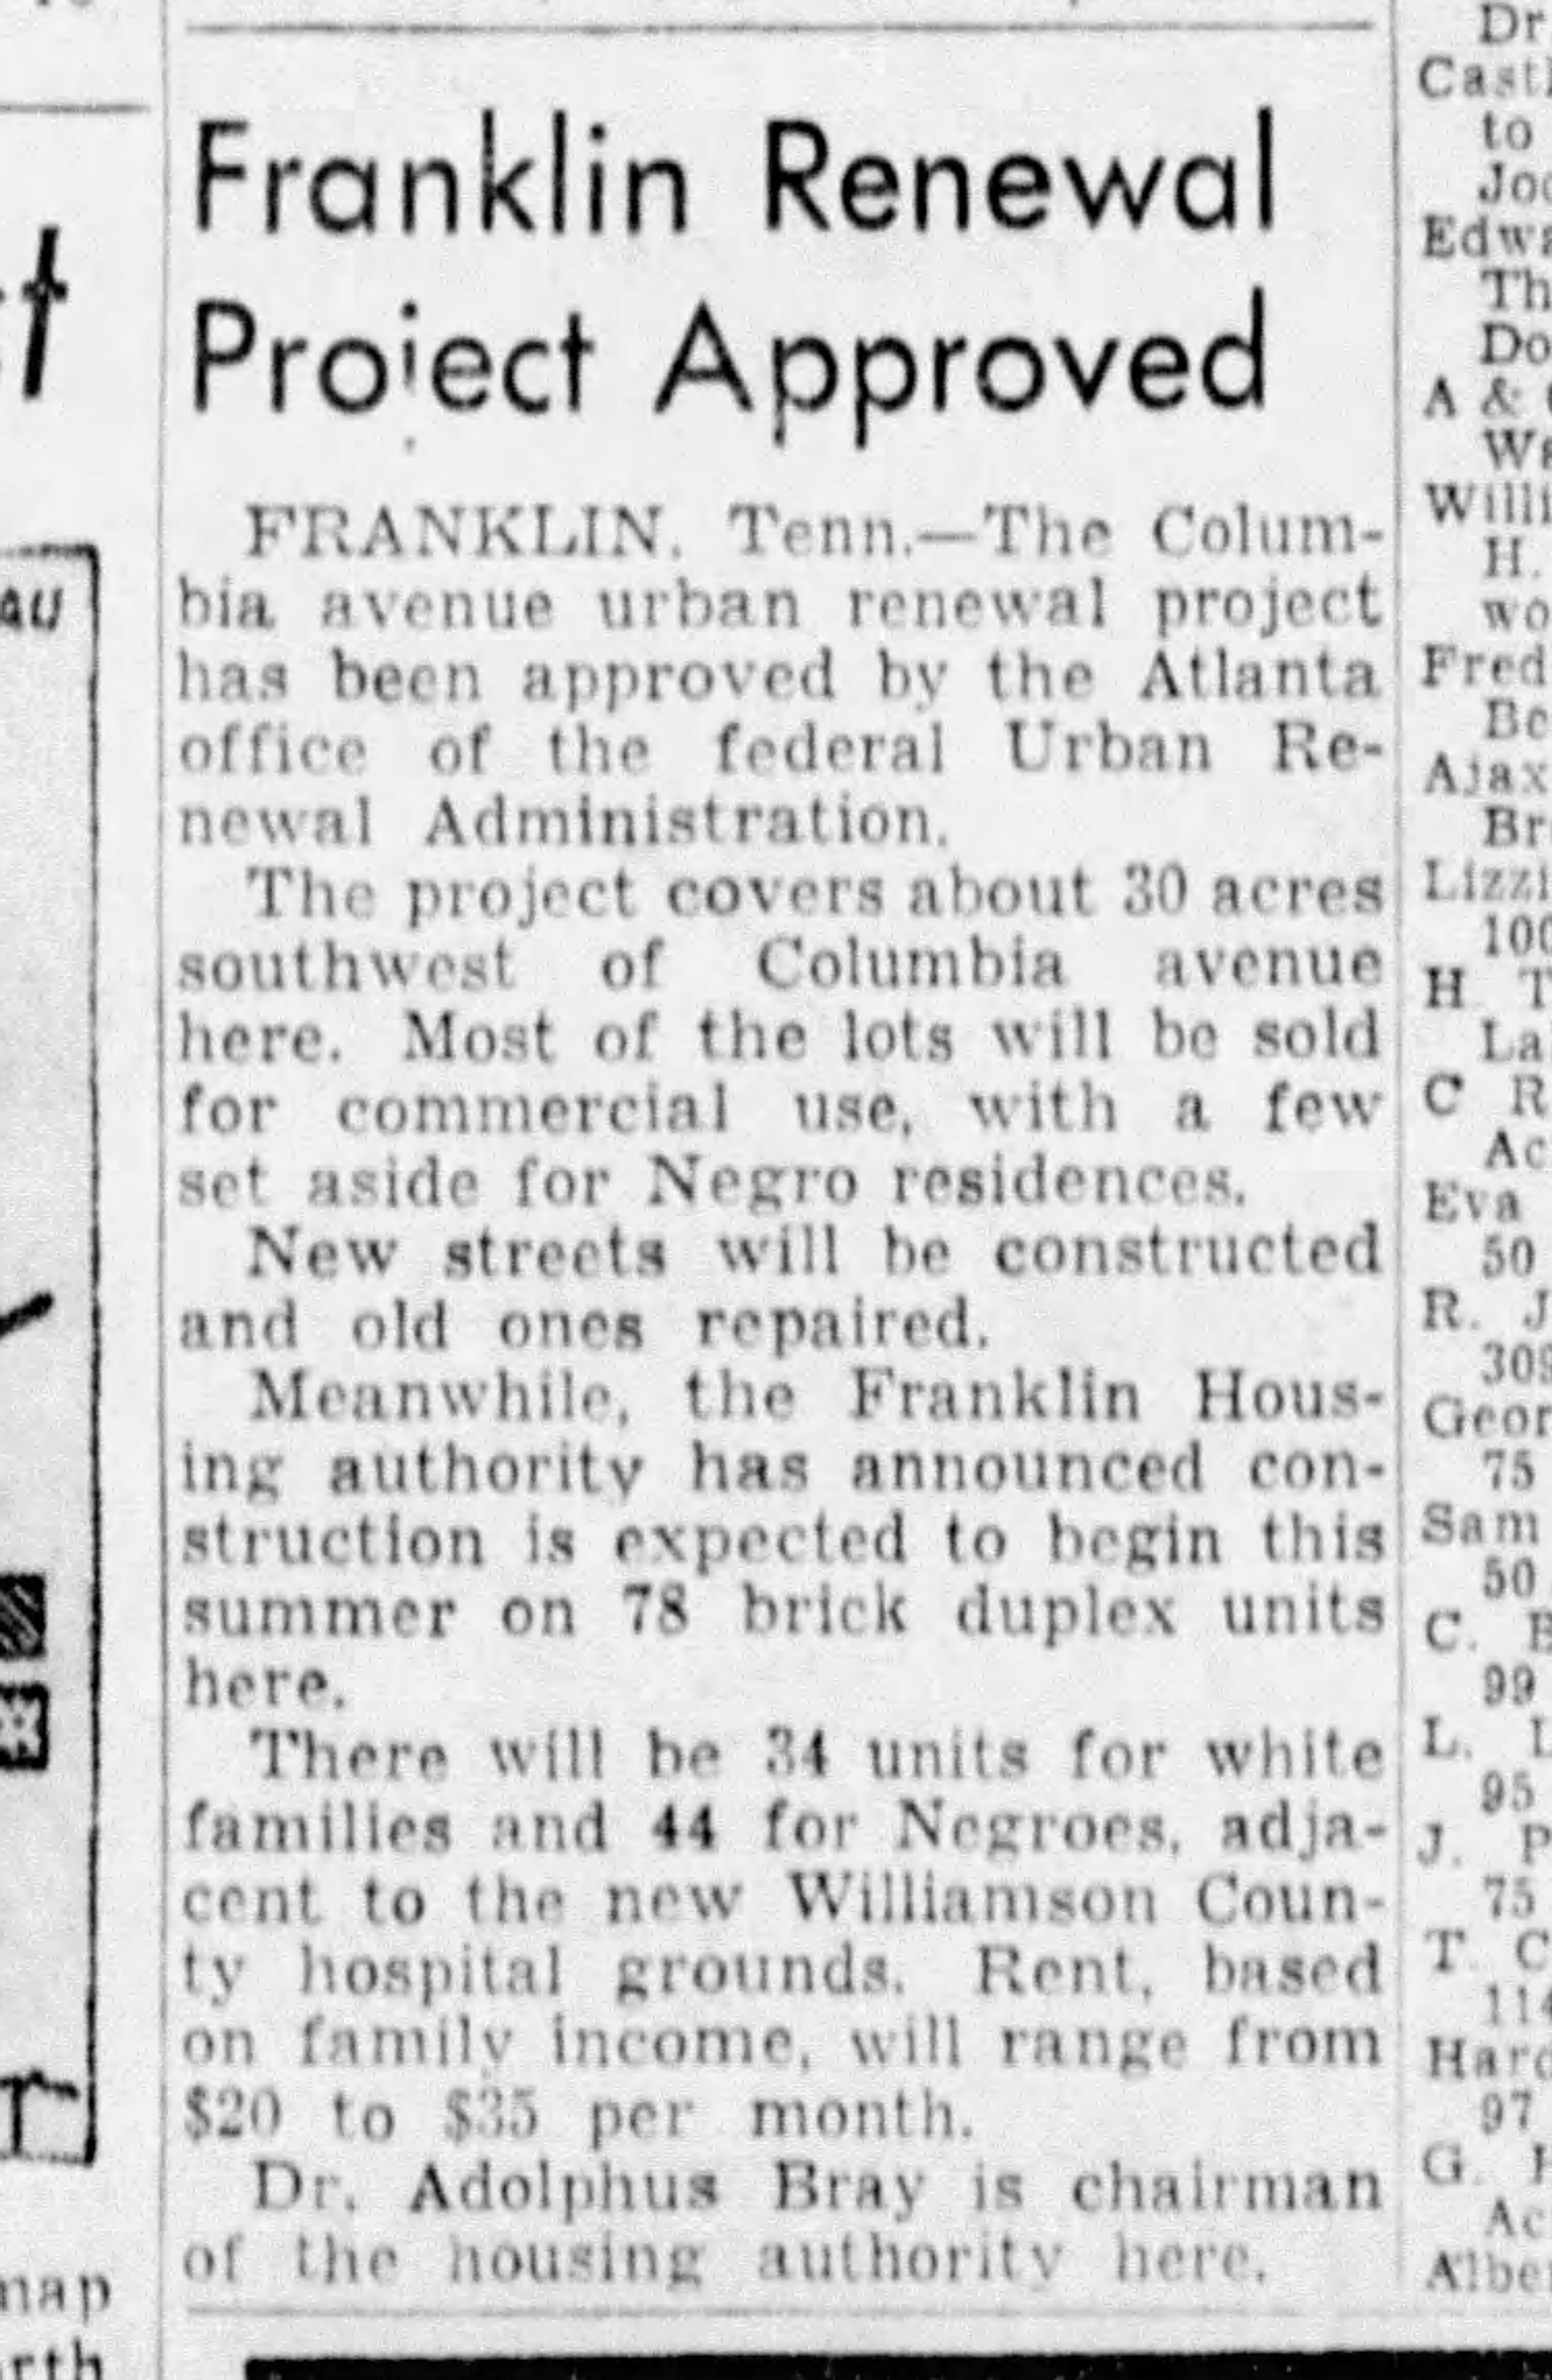 The_Tennessean_Sun__Mar_31__1957_